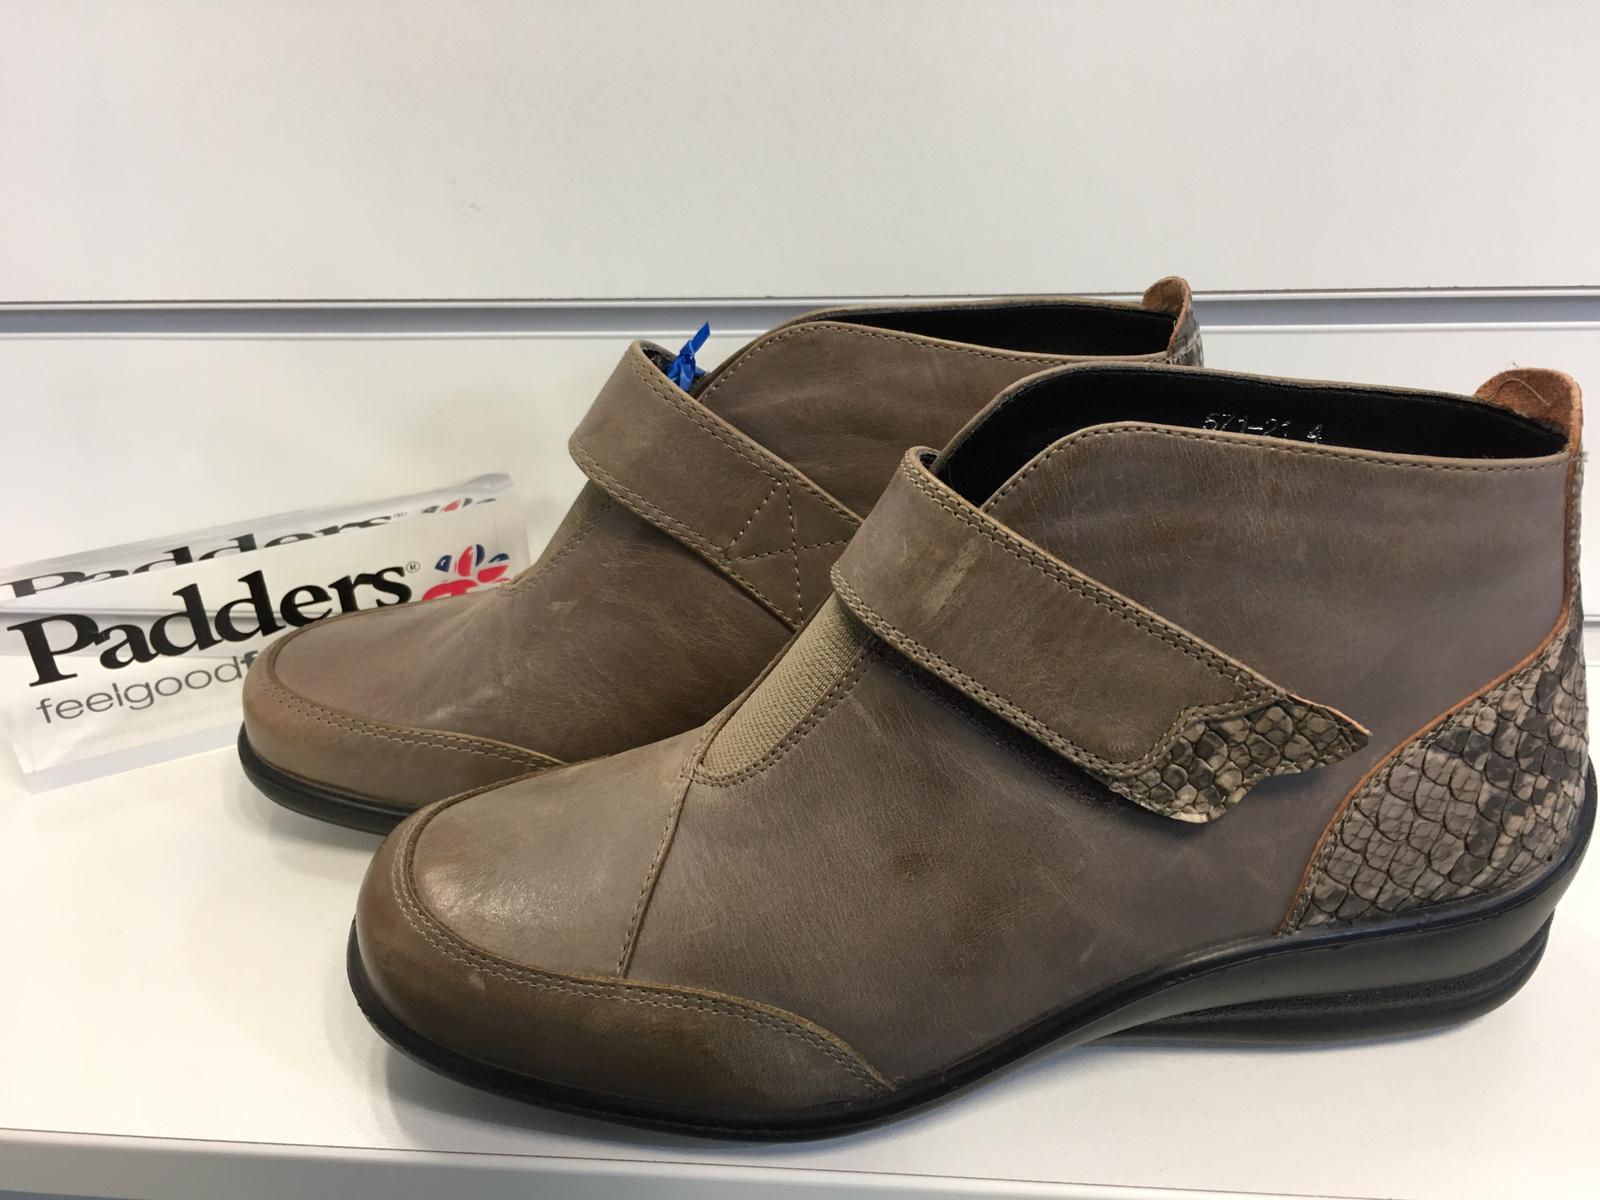 SALE - Padders Ankle Boot - Tan - UK 4